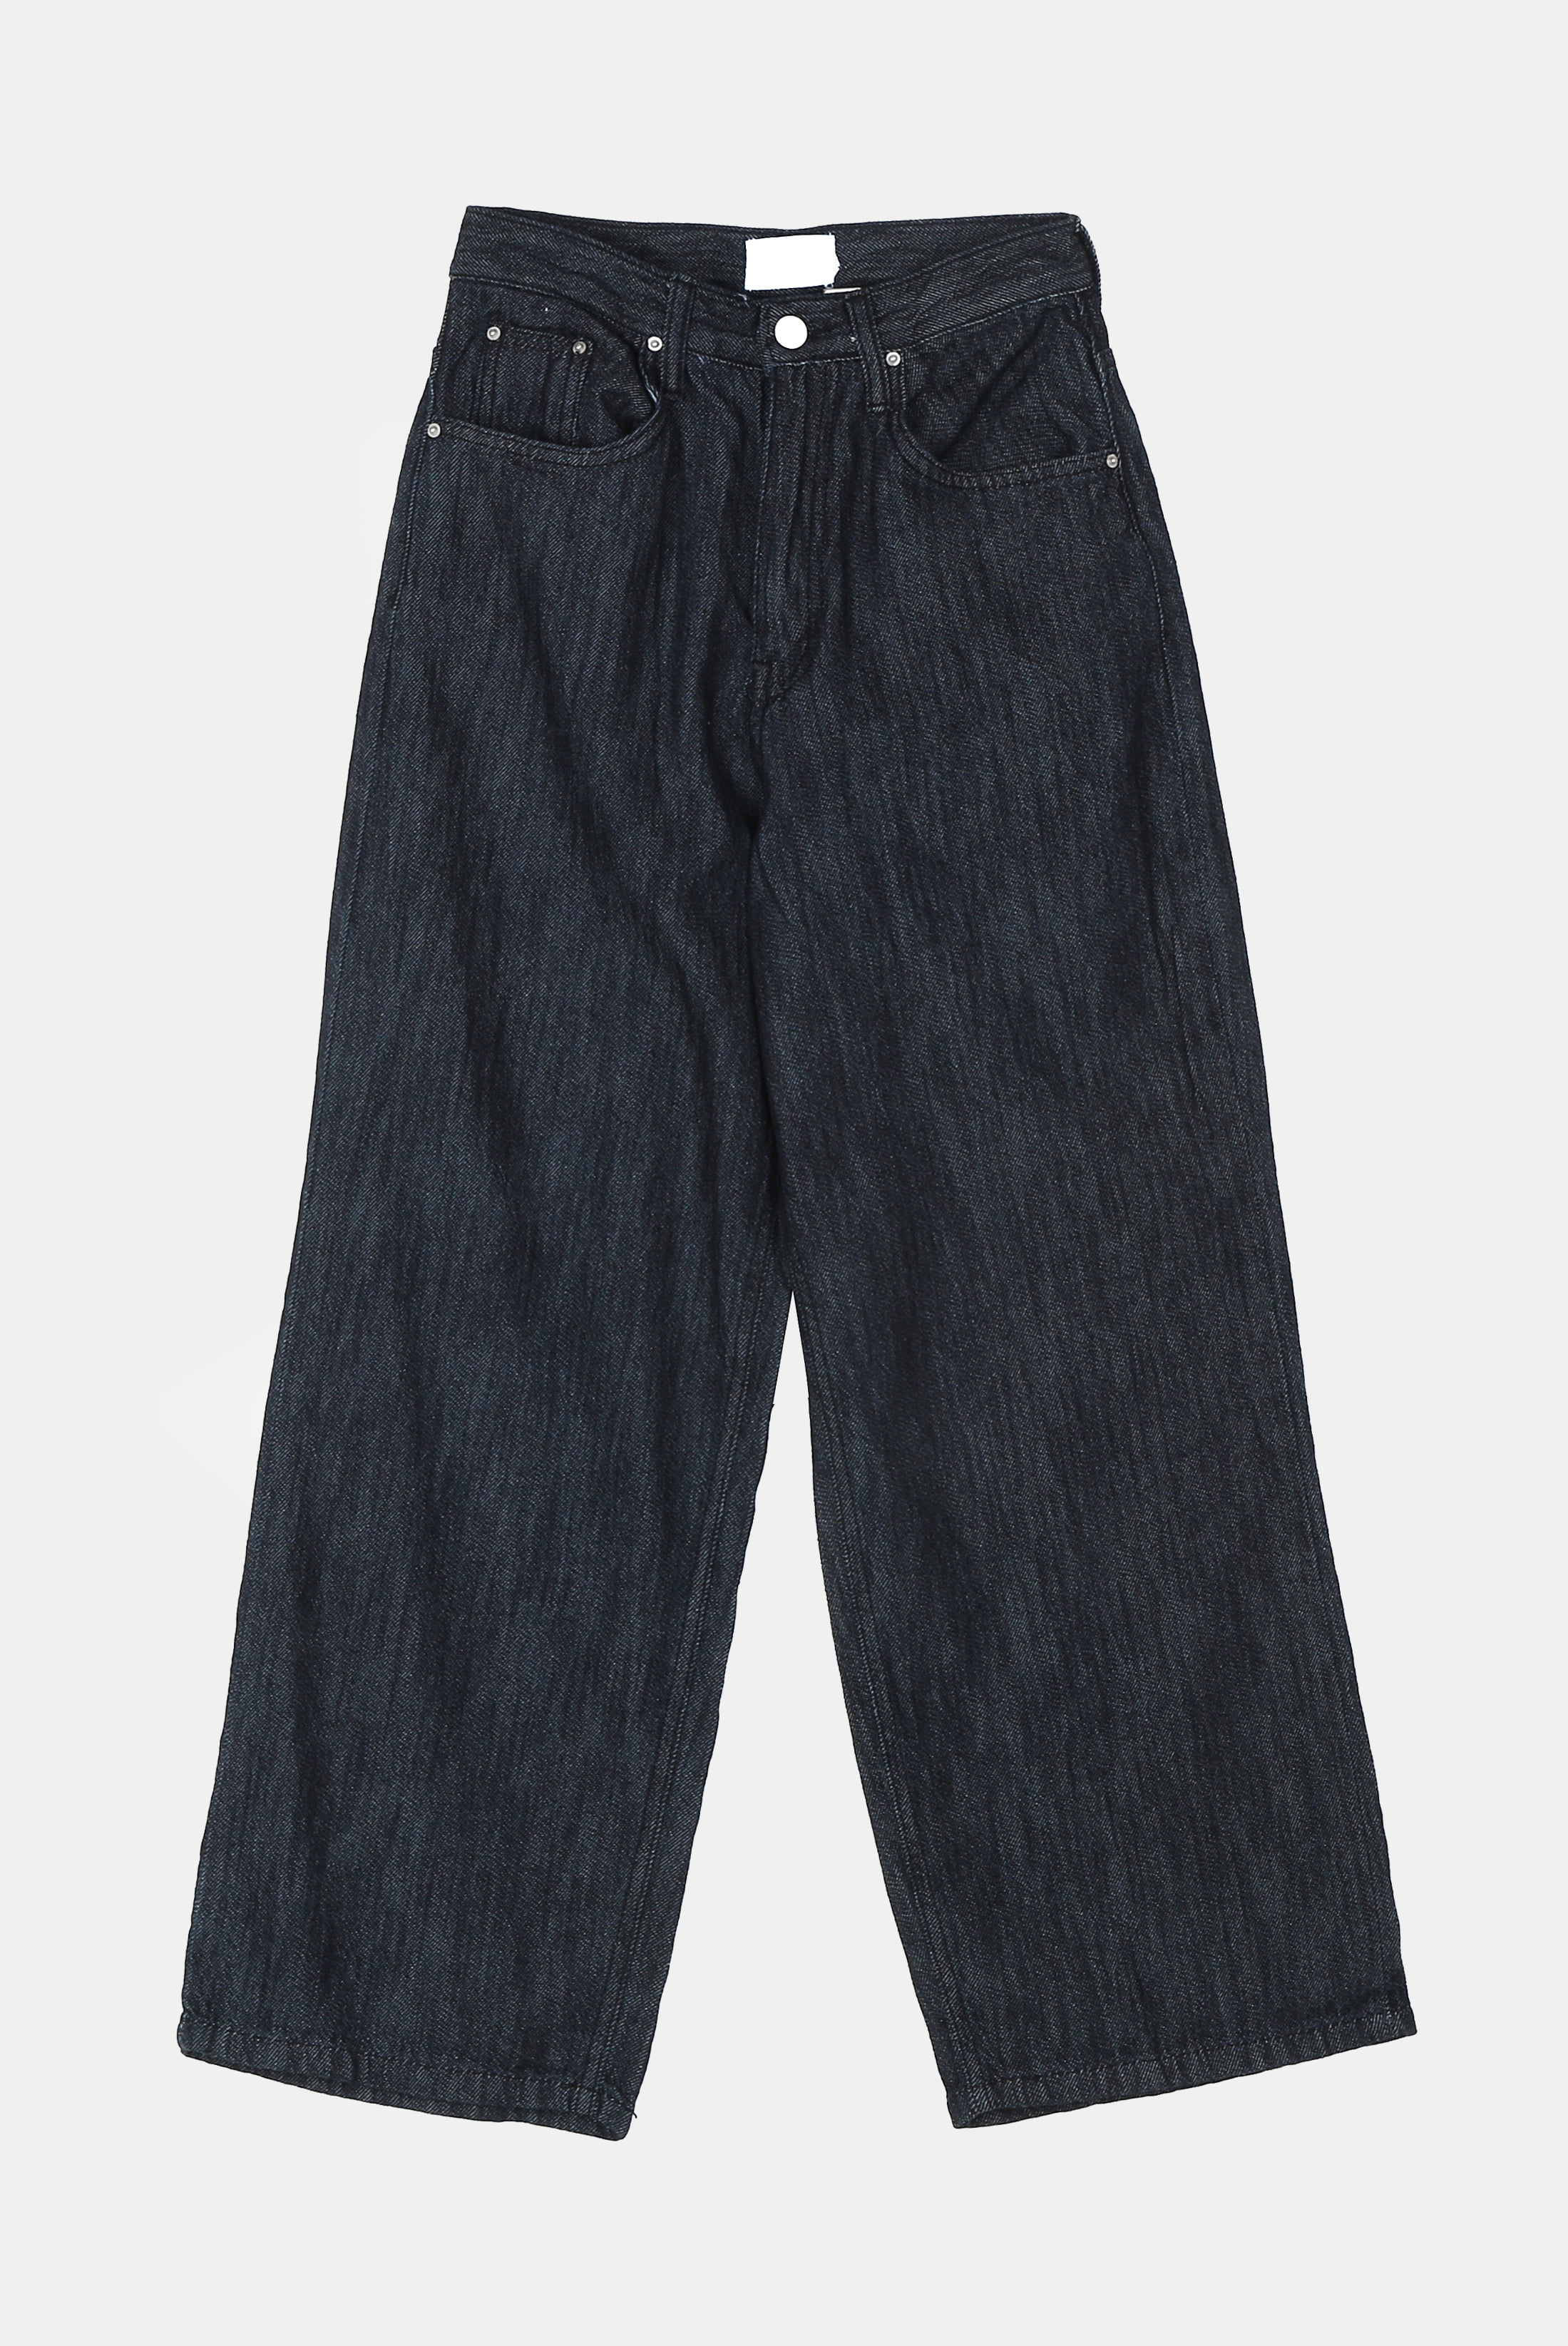 (W) Linen_Denim Wide_Pants